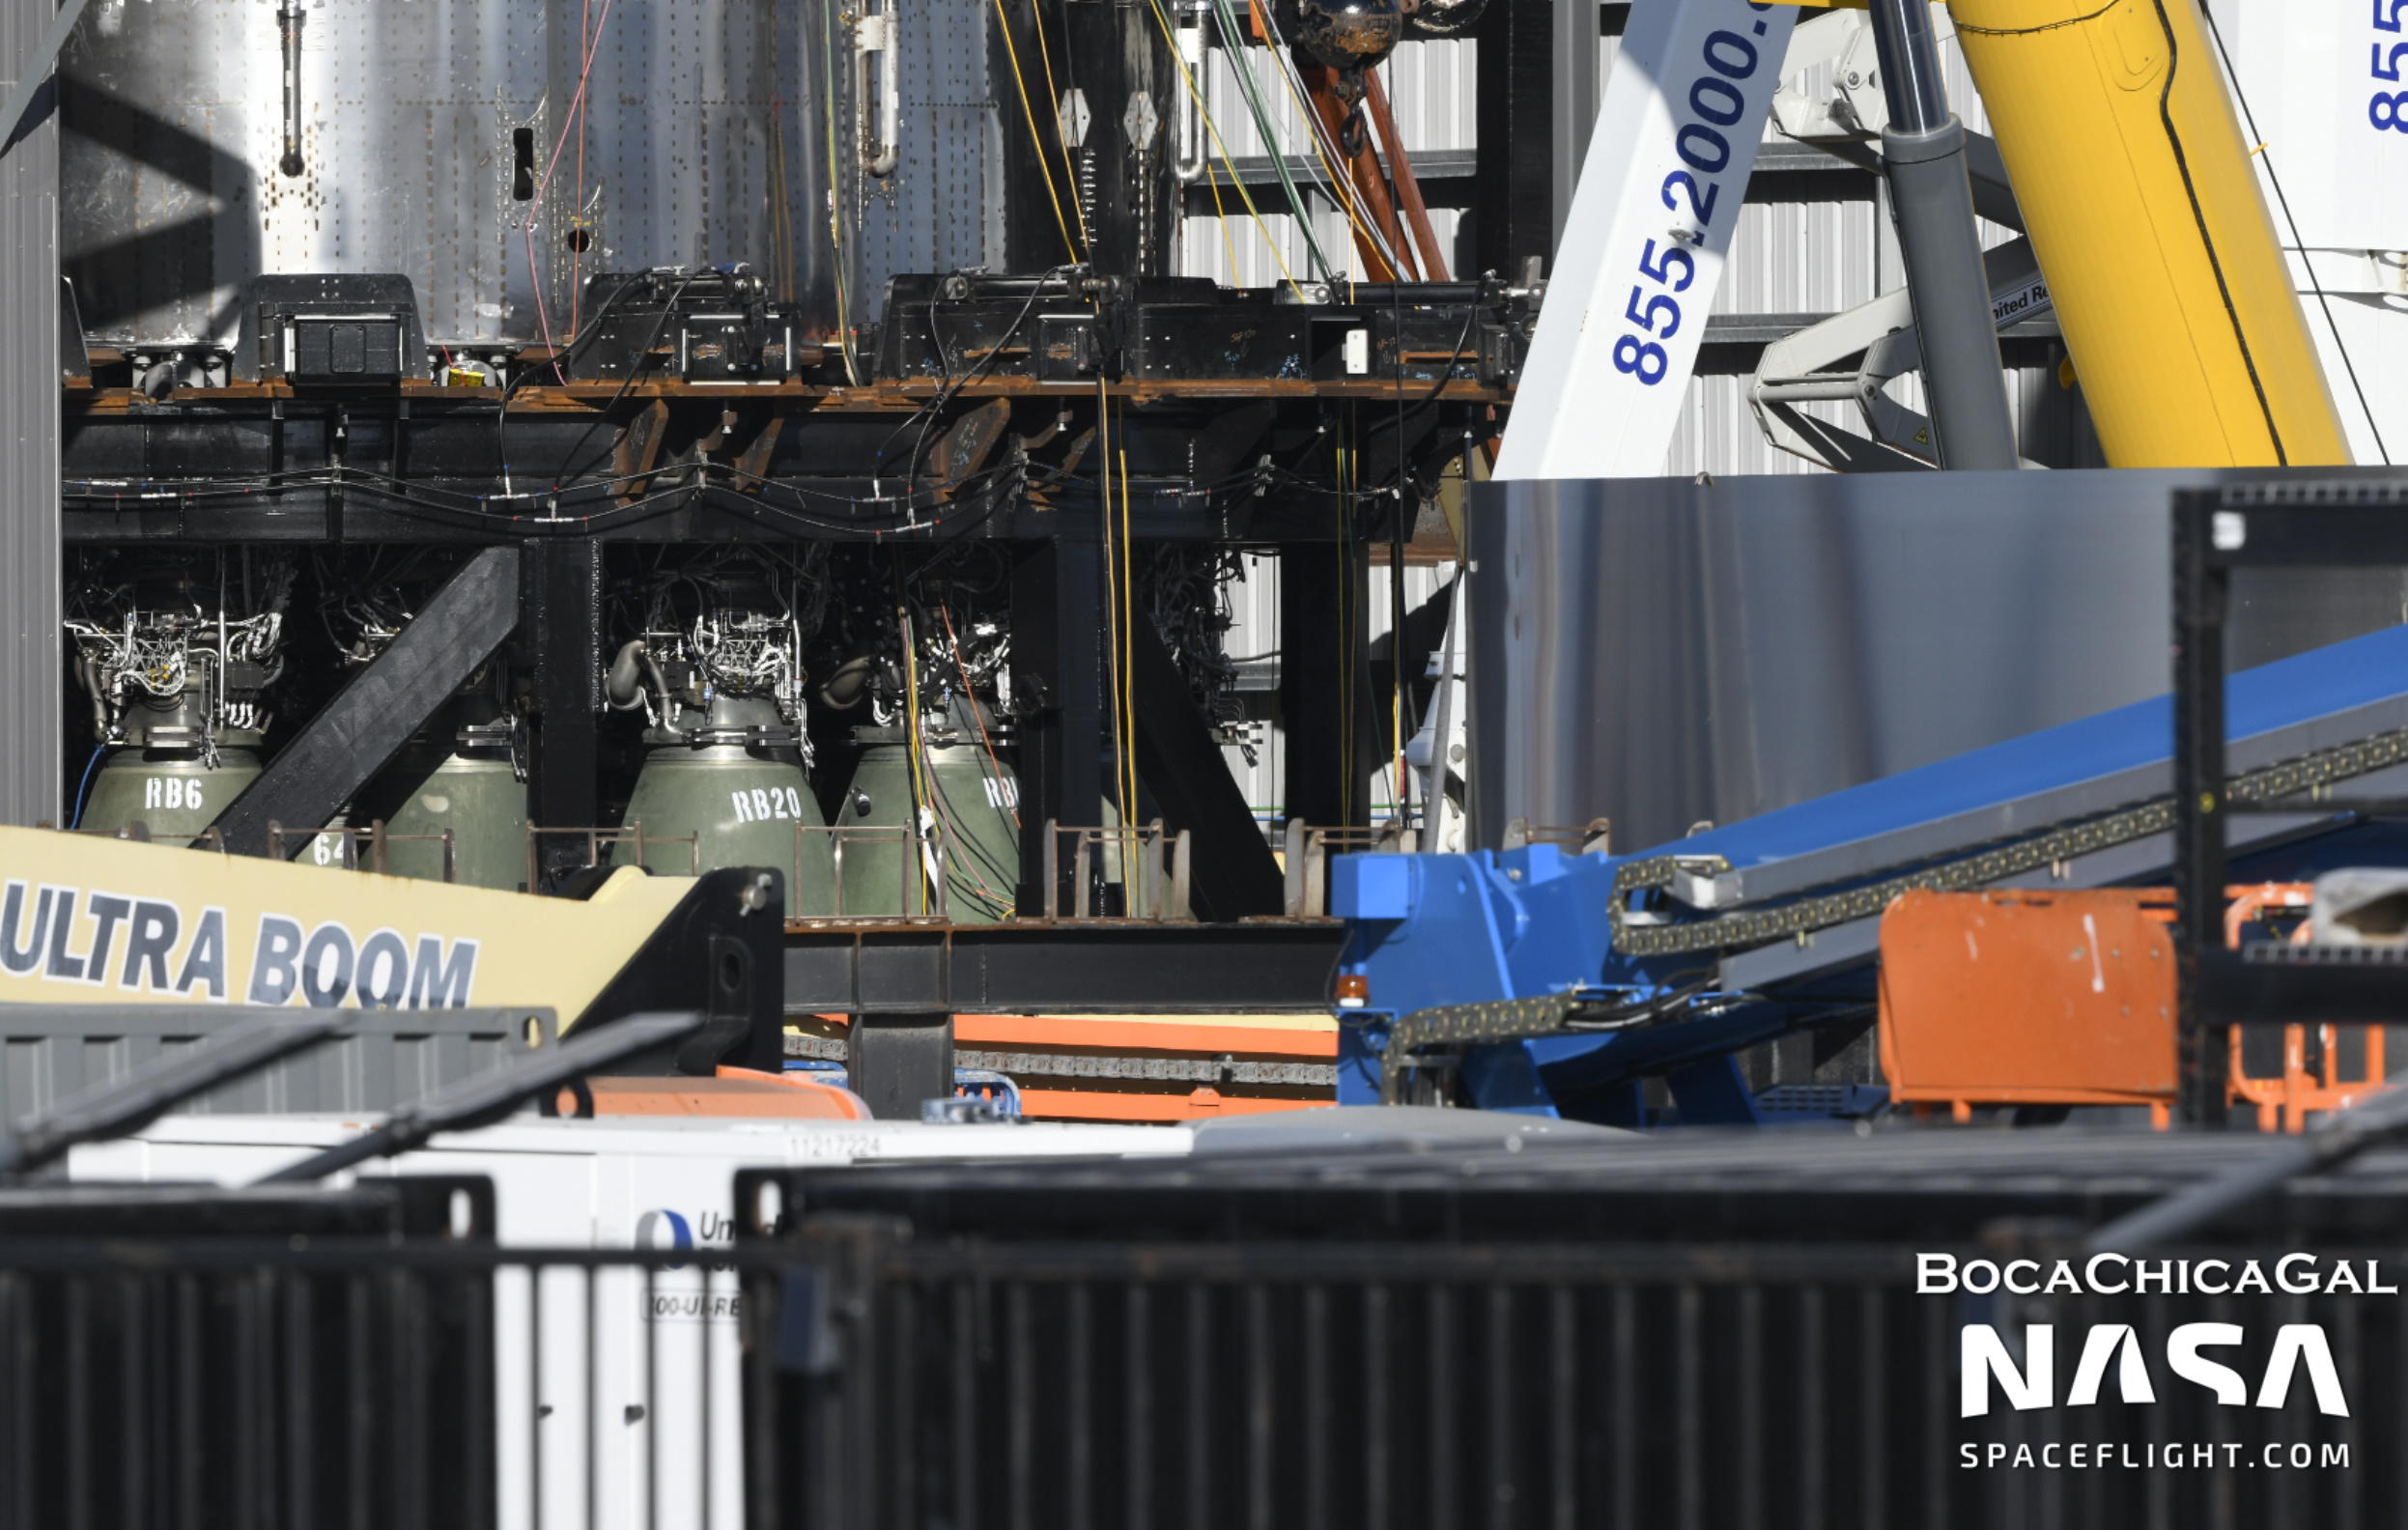 Starbase Surge sees SpaceX speed ahead with Booster 4 and Ship 20